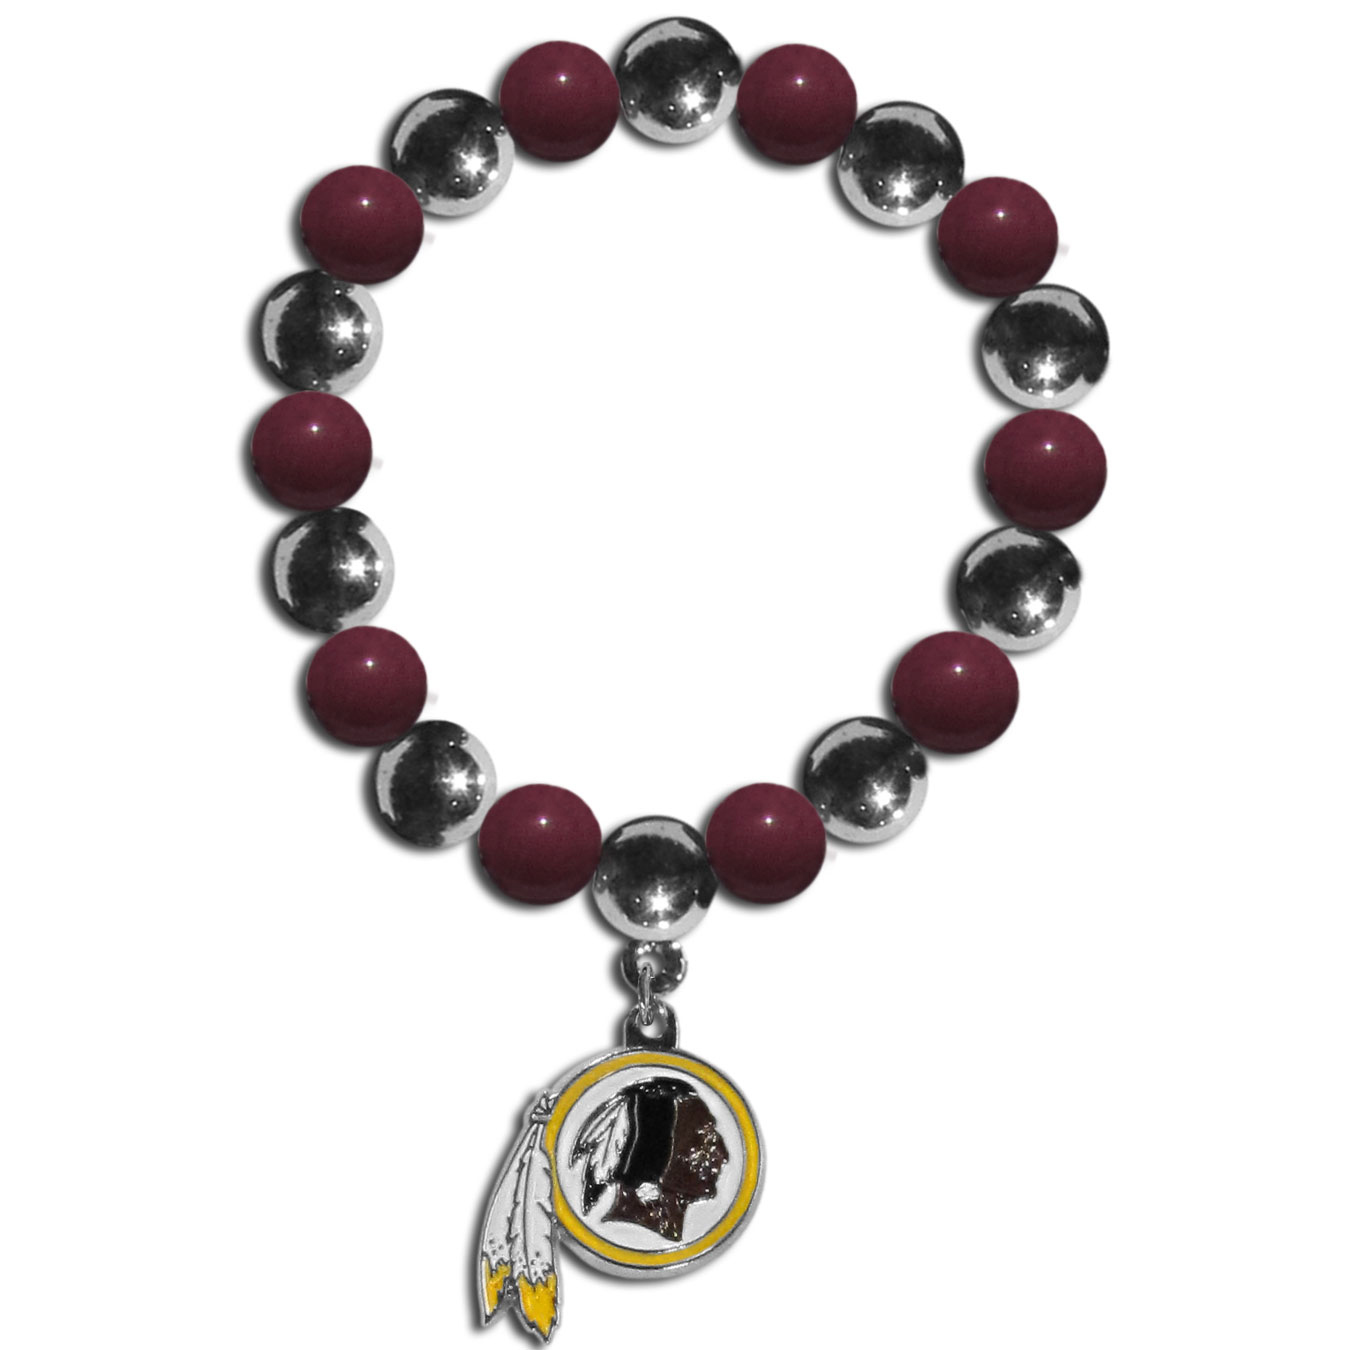 Washington Redskins Chrome Bead Bracelet - Flash your Washington Redskins spirit with this bright stretch bracelet. This new bracelet features alternating charm & team beads on stretch cord with a nickel-free enameled chrome team charm. This bracelet adds the perfect pop of color to your game day accessories.